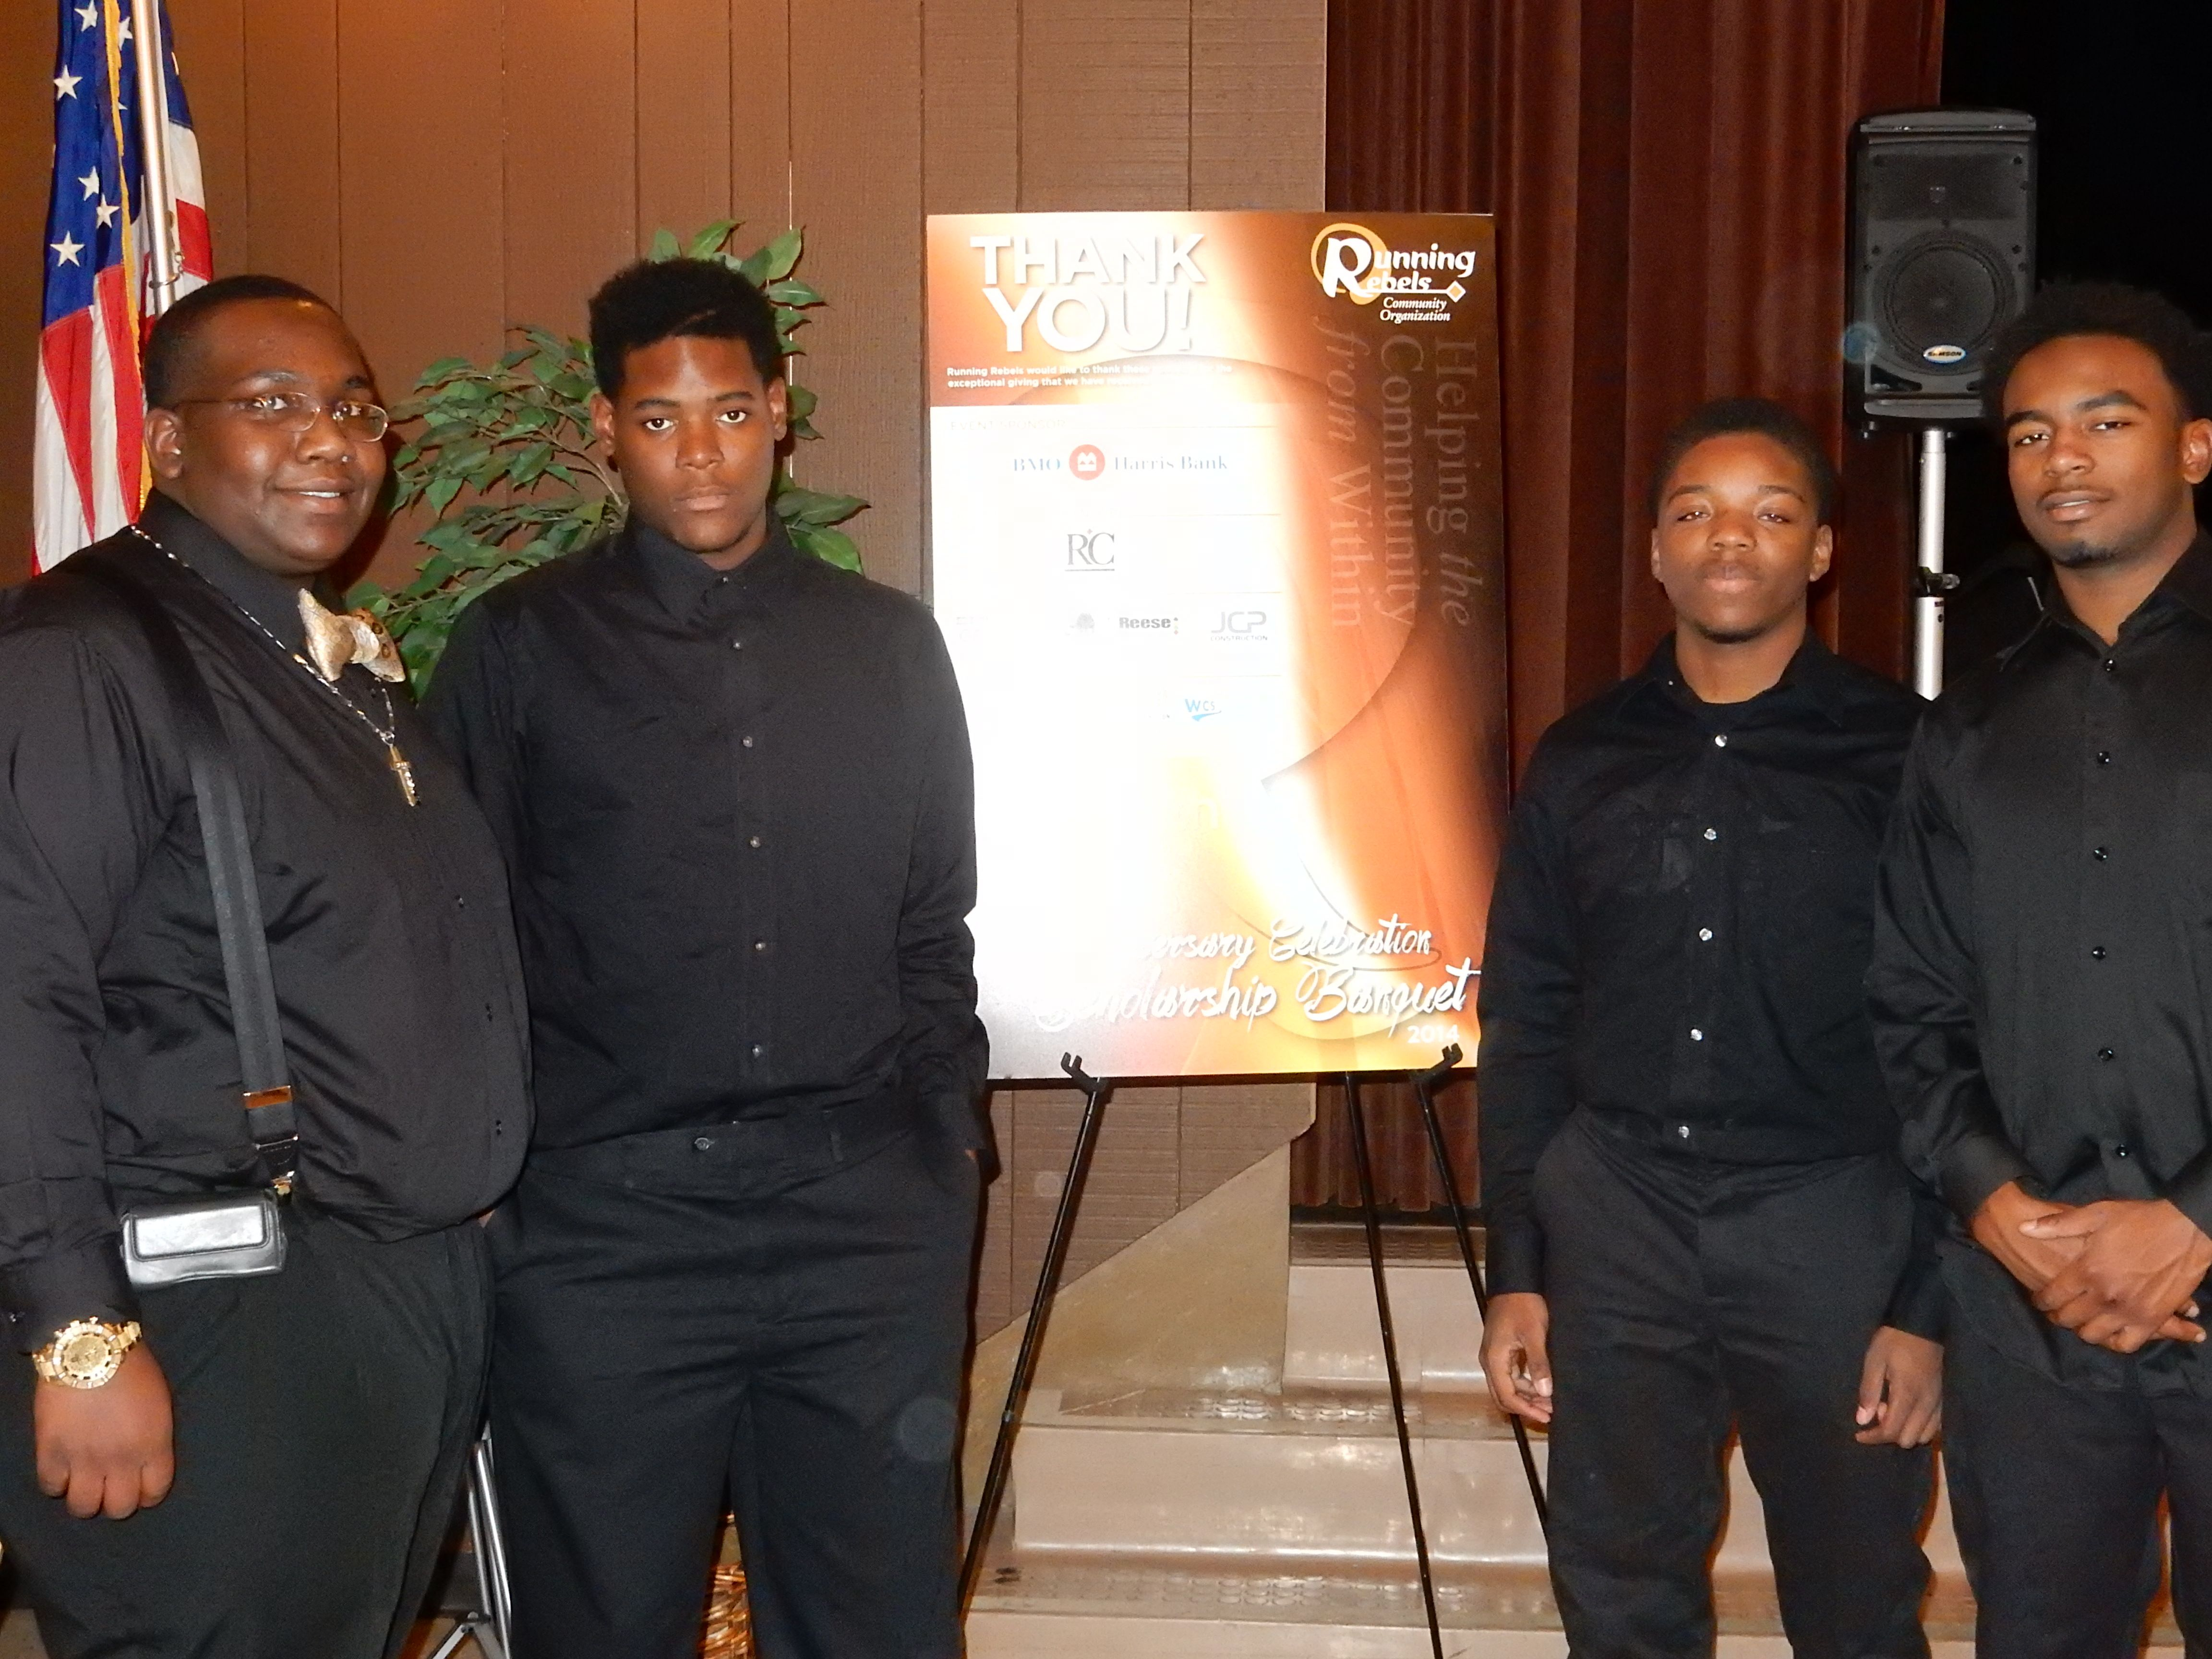 Running Rebels' 34th Annual Scholarship Banquet was a success